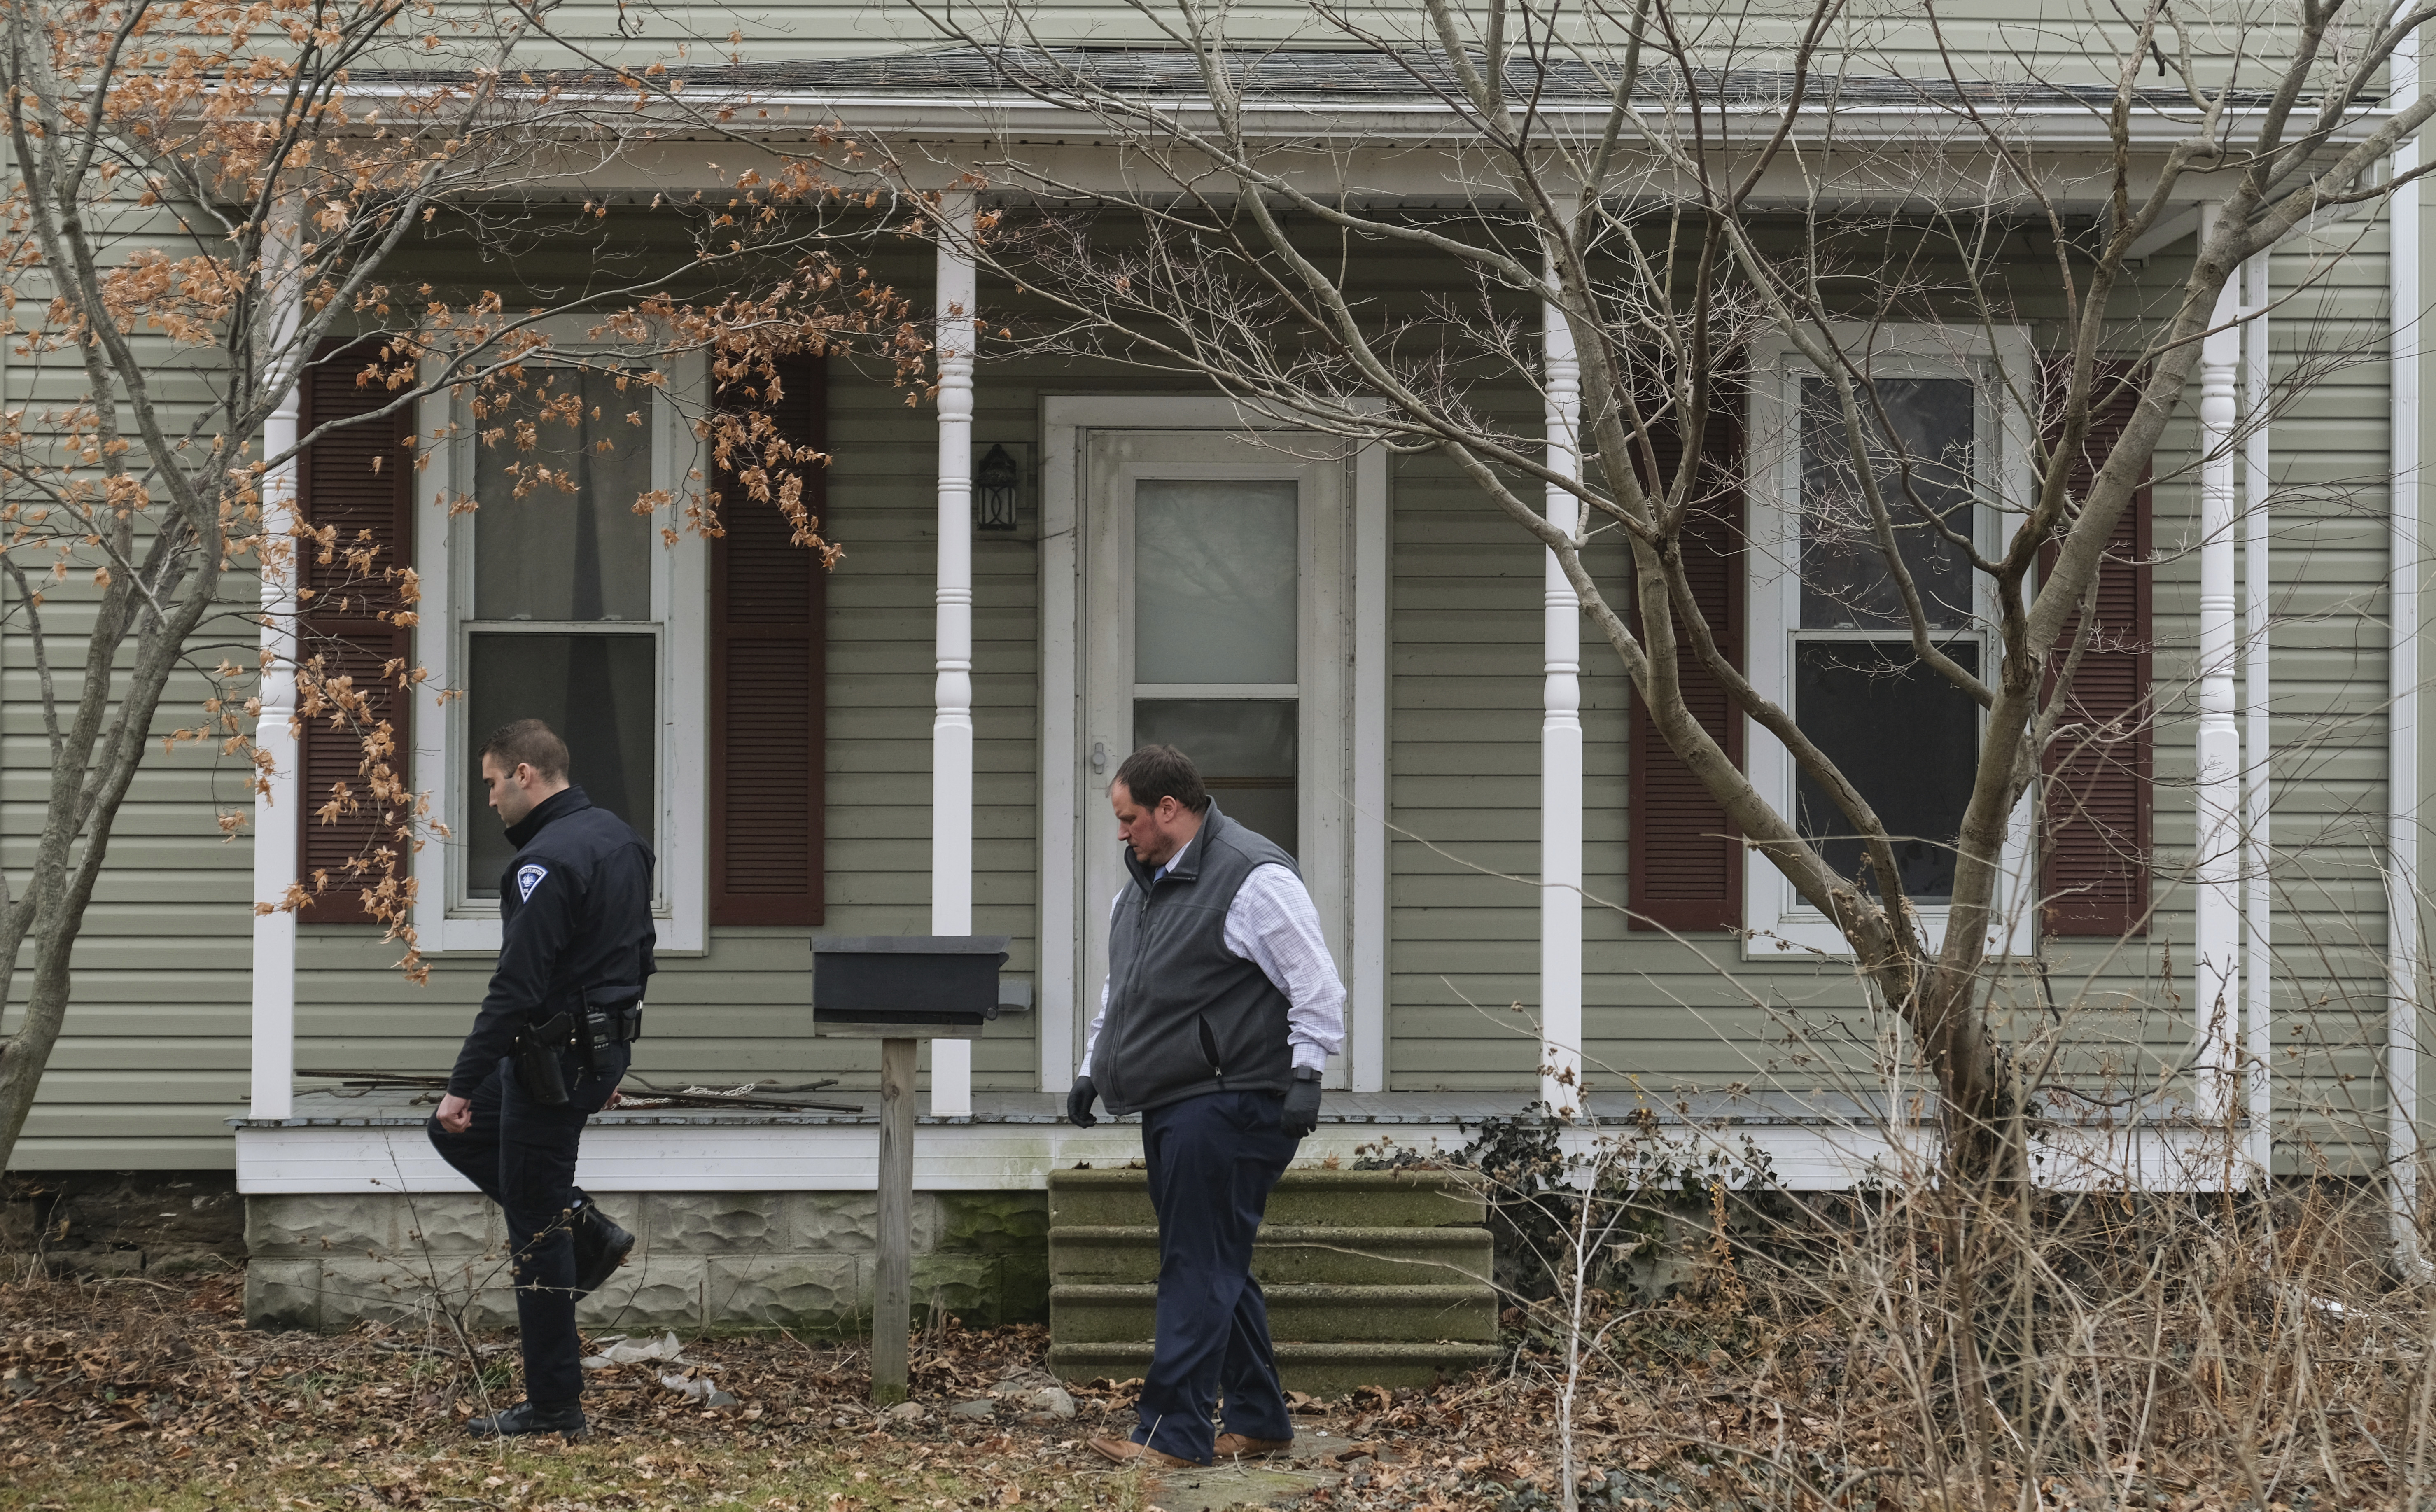 Law enforcement officers walk around a vacant house on Jan. 14, 2020, in Port Clinton, Ohio. where the body of Harley Dilly, 14, was found inside the chimney.